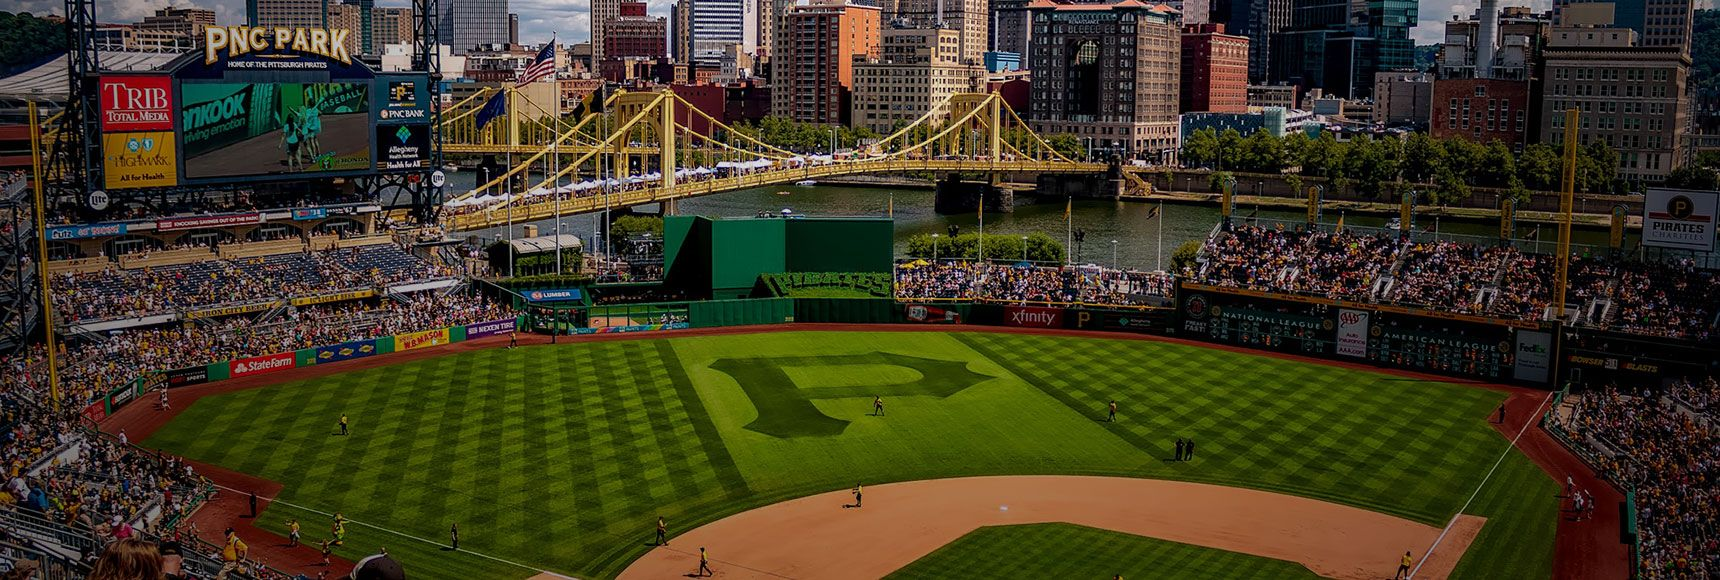 Panoramic shot of Pittsburgh from PNC park